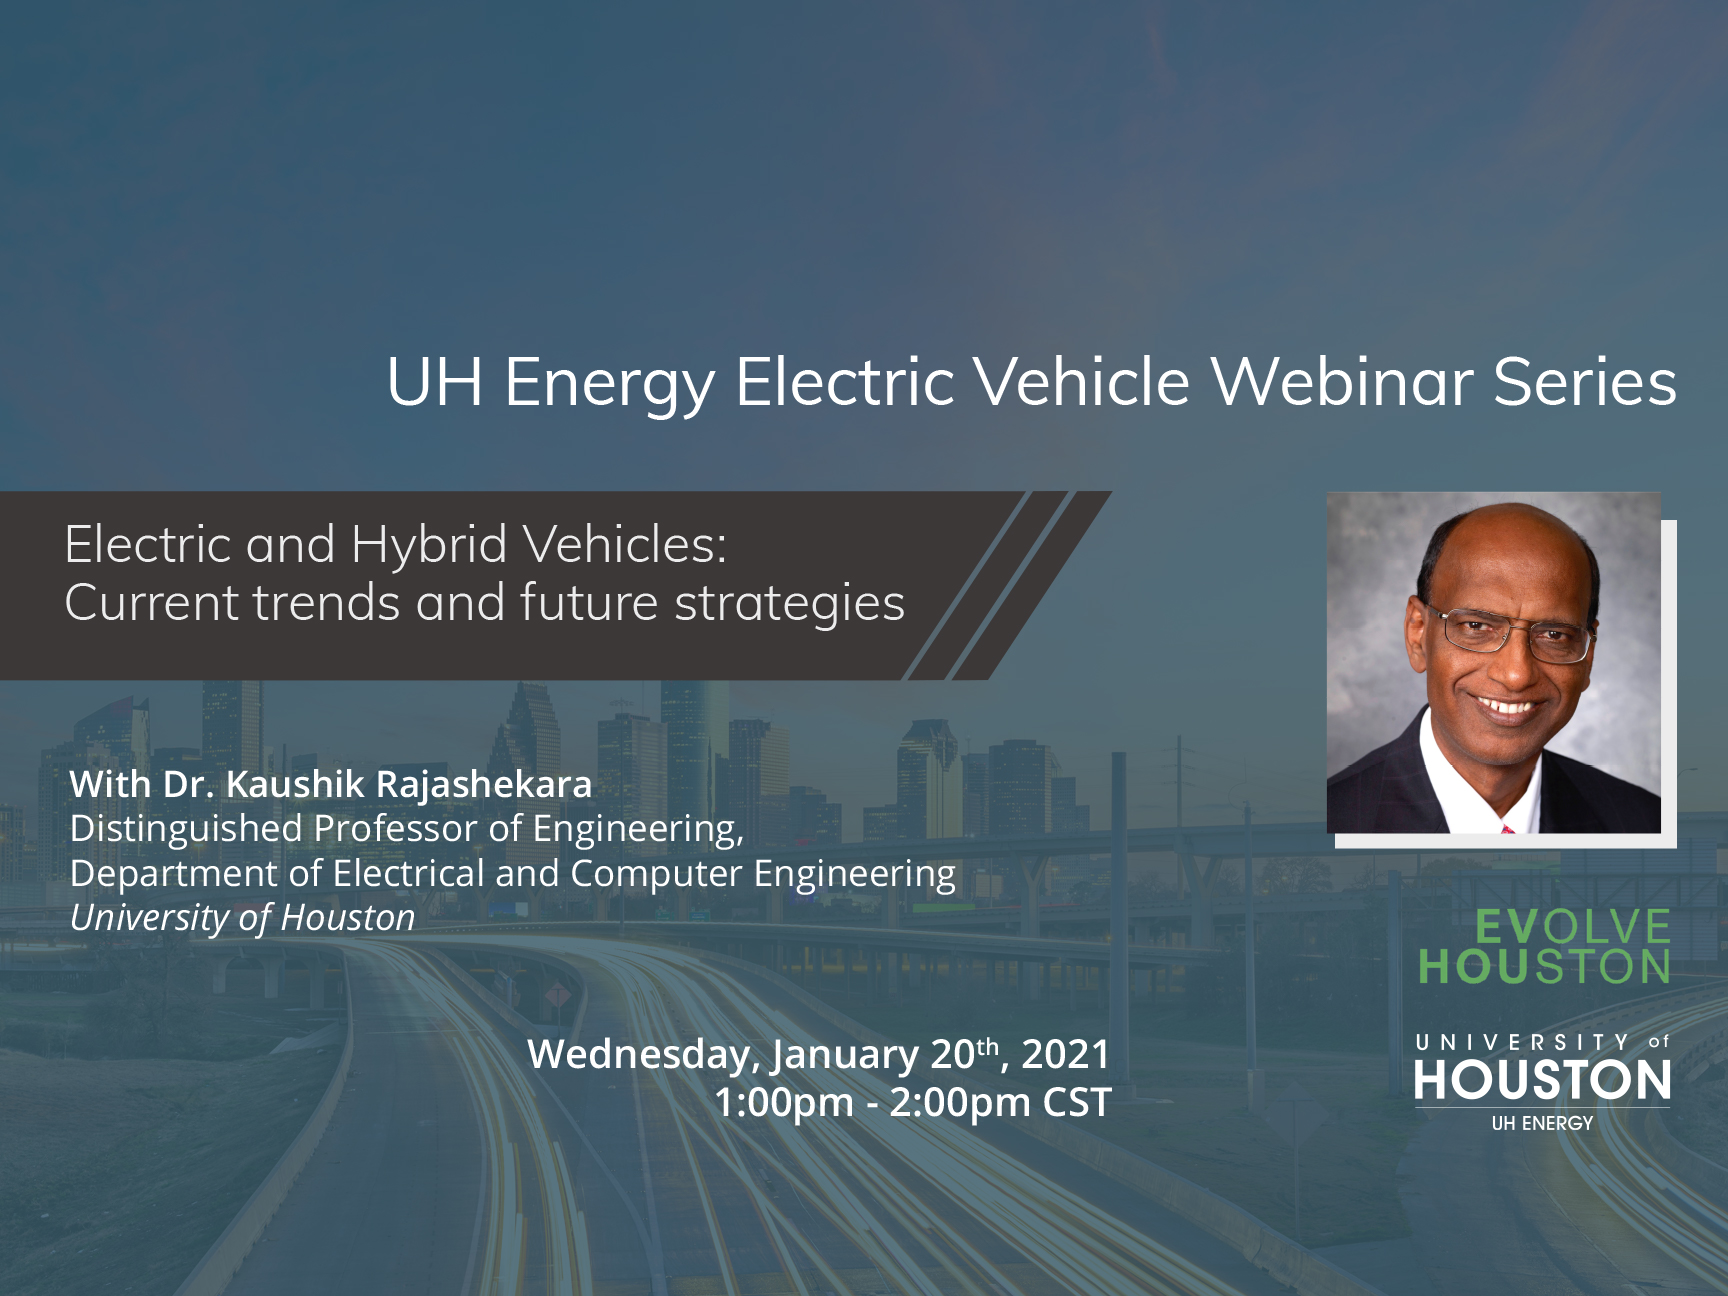 UH Energy Electric Vehicle Webinar Series: Electric and Hybrid Vehicles: Current Trends and Future Strategies Image